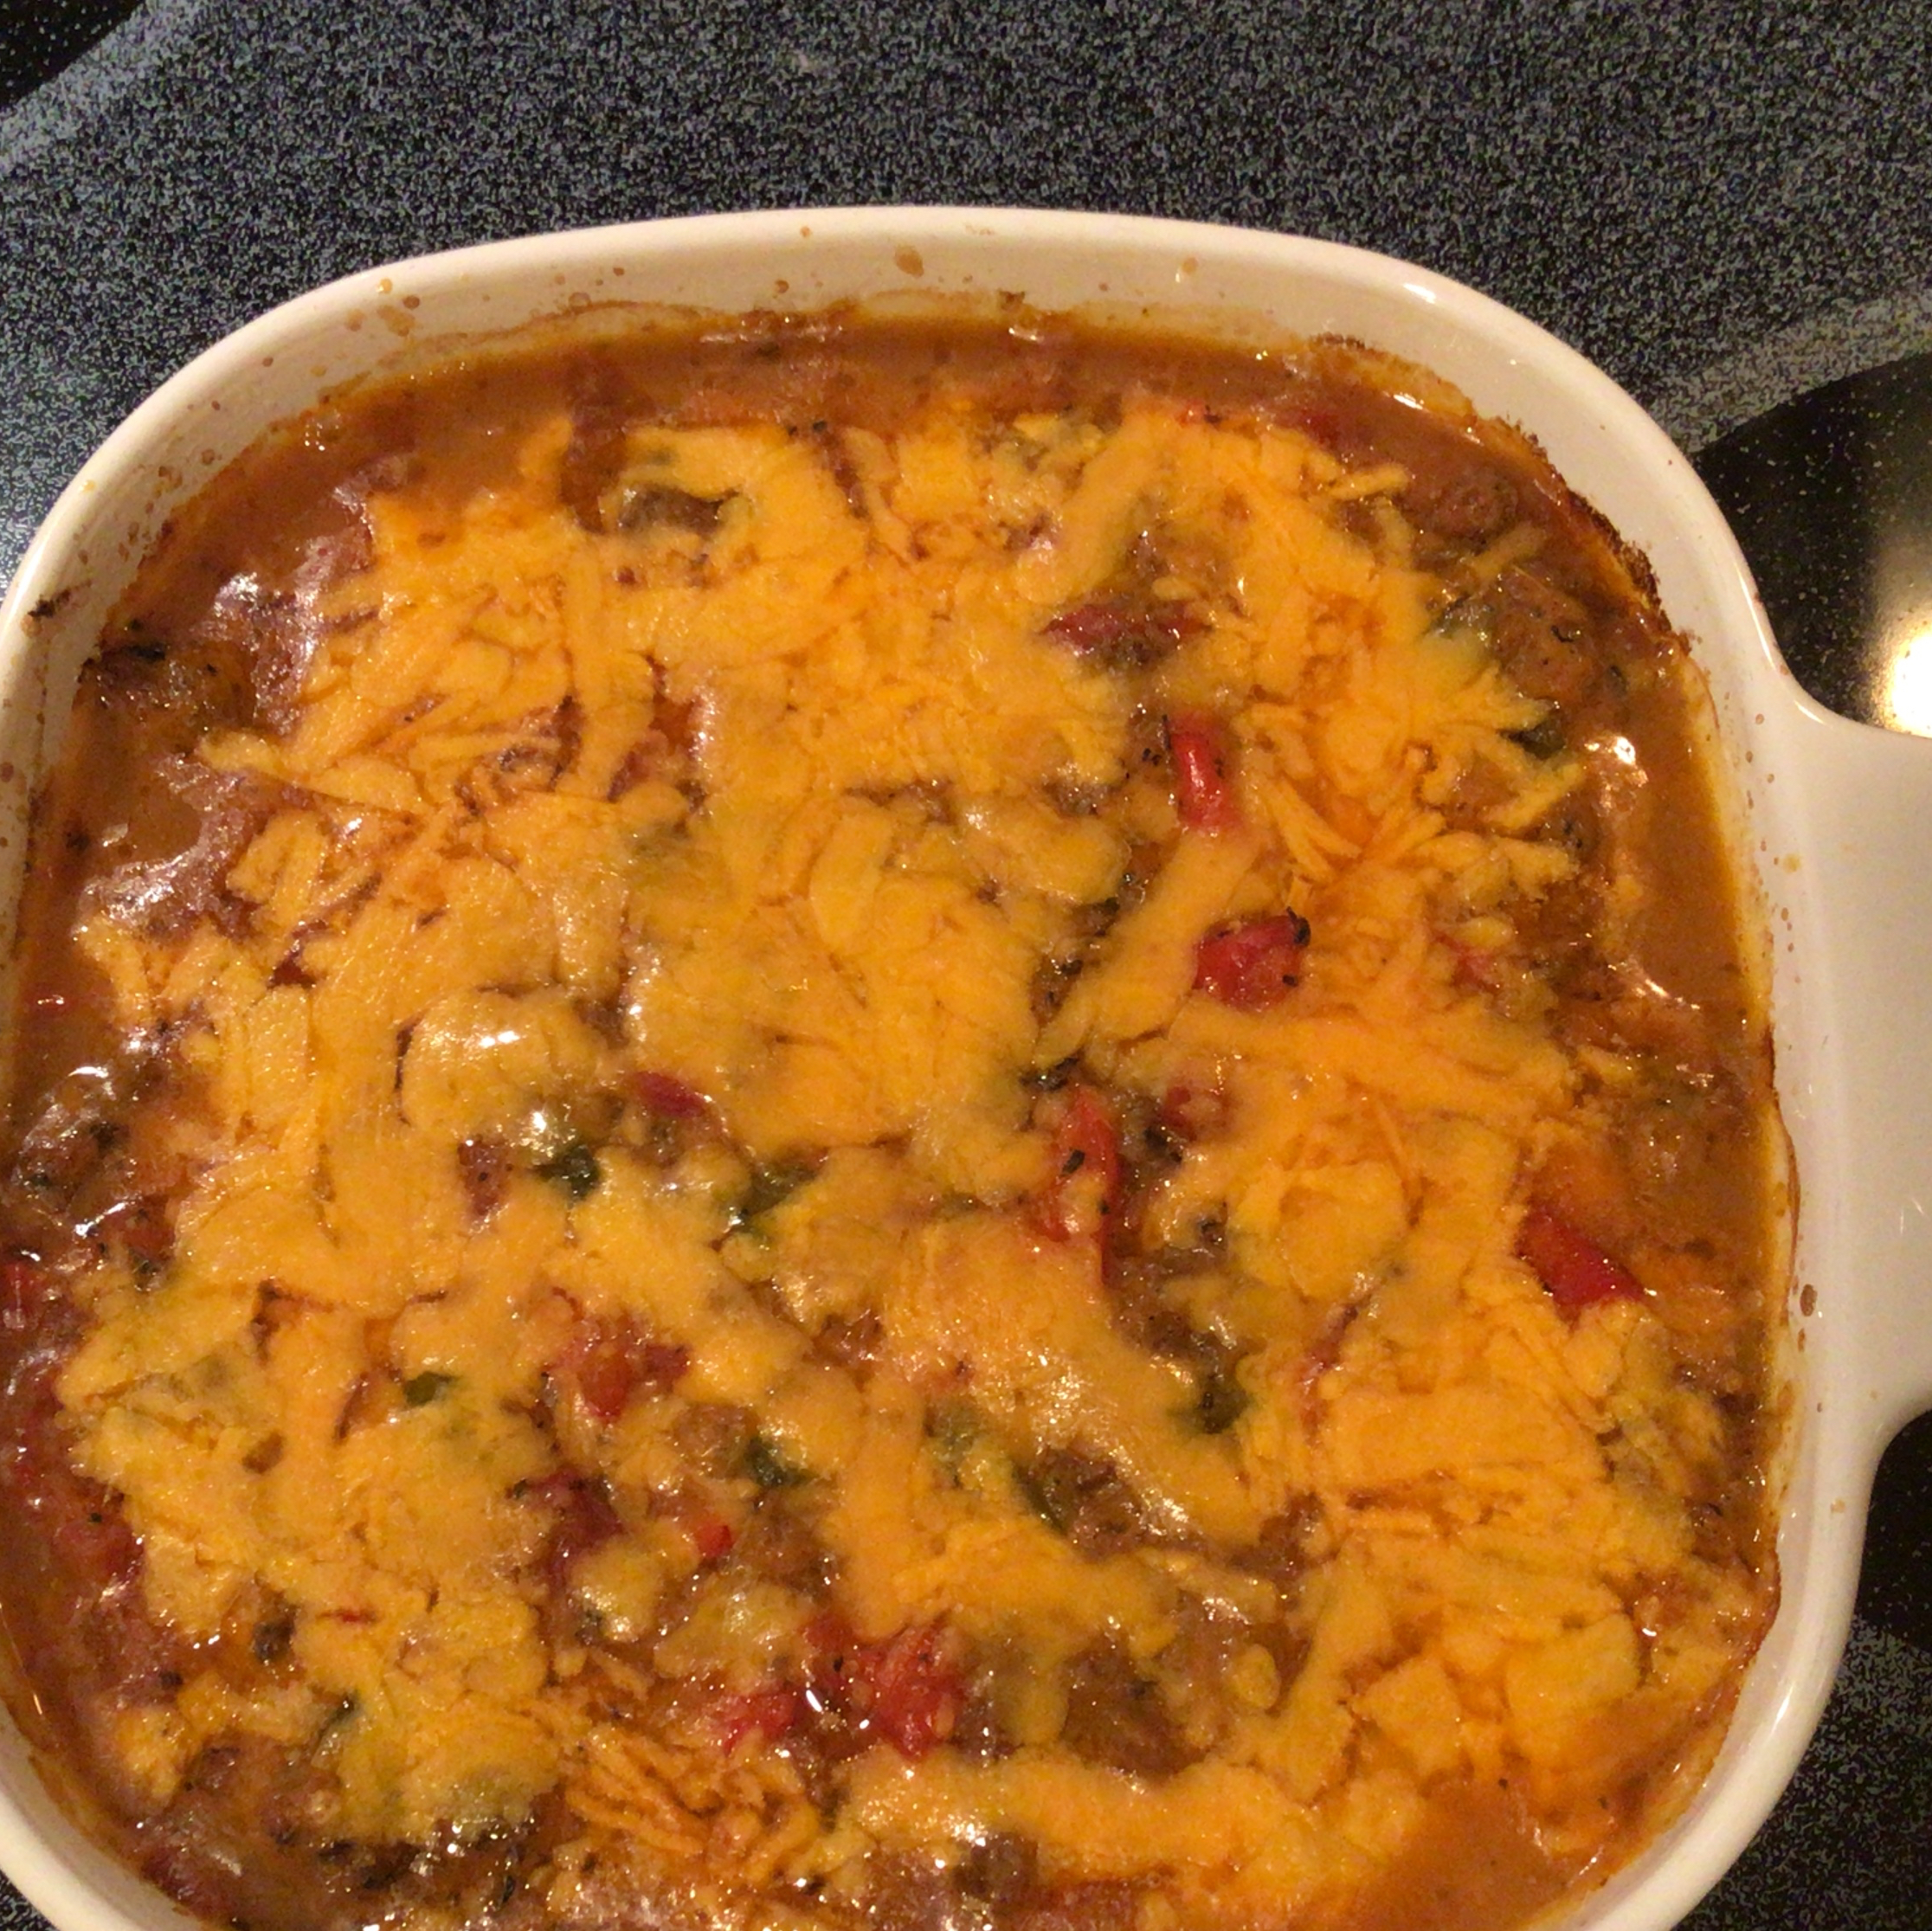 Baked Spaghetti Squash with Beef and Veggies claire77